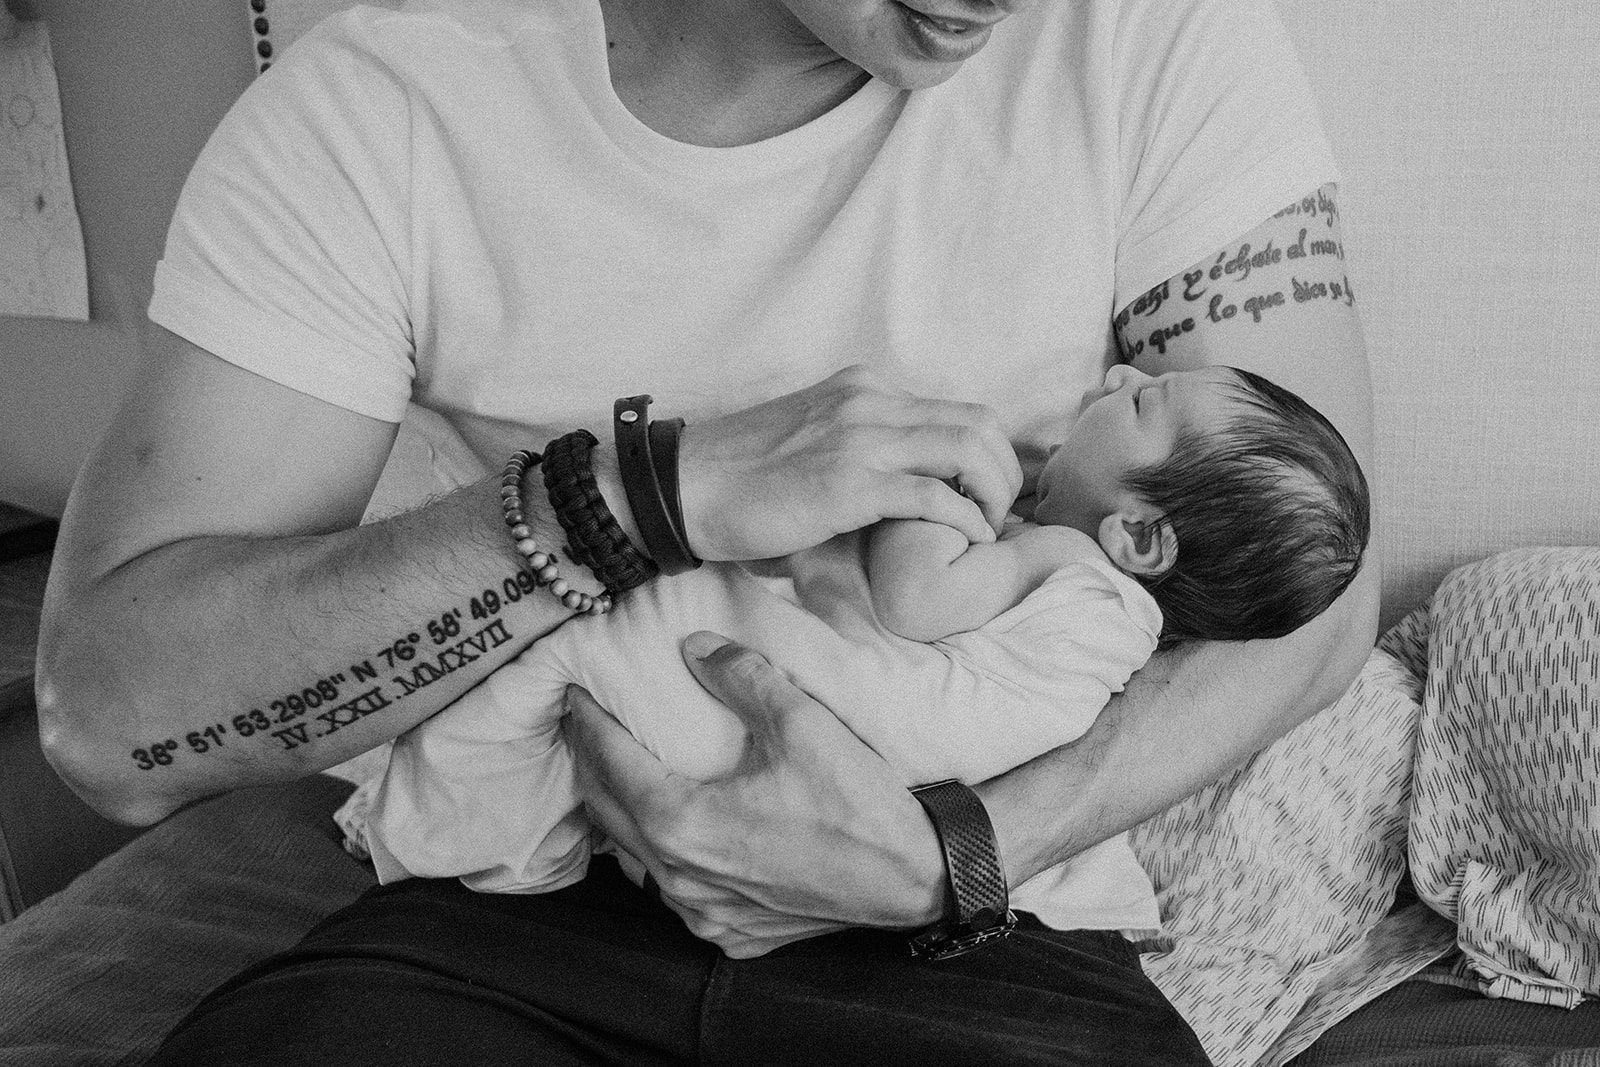 A tattooed father holds his newborn son during an in home family photography session.